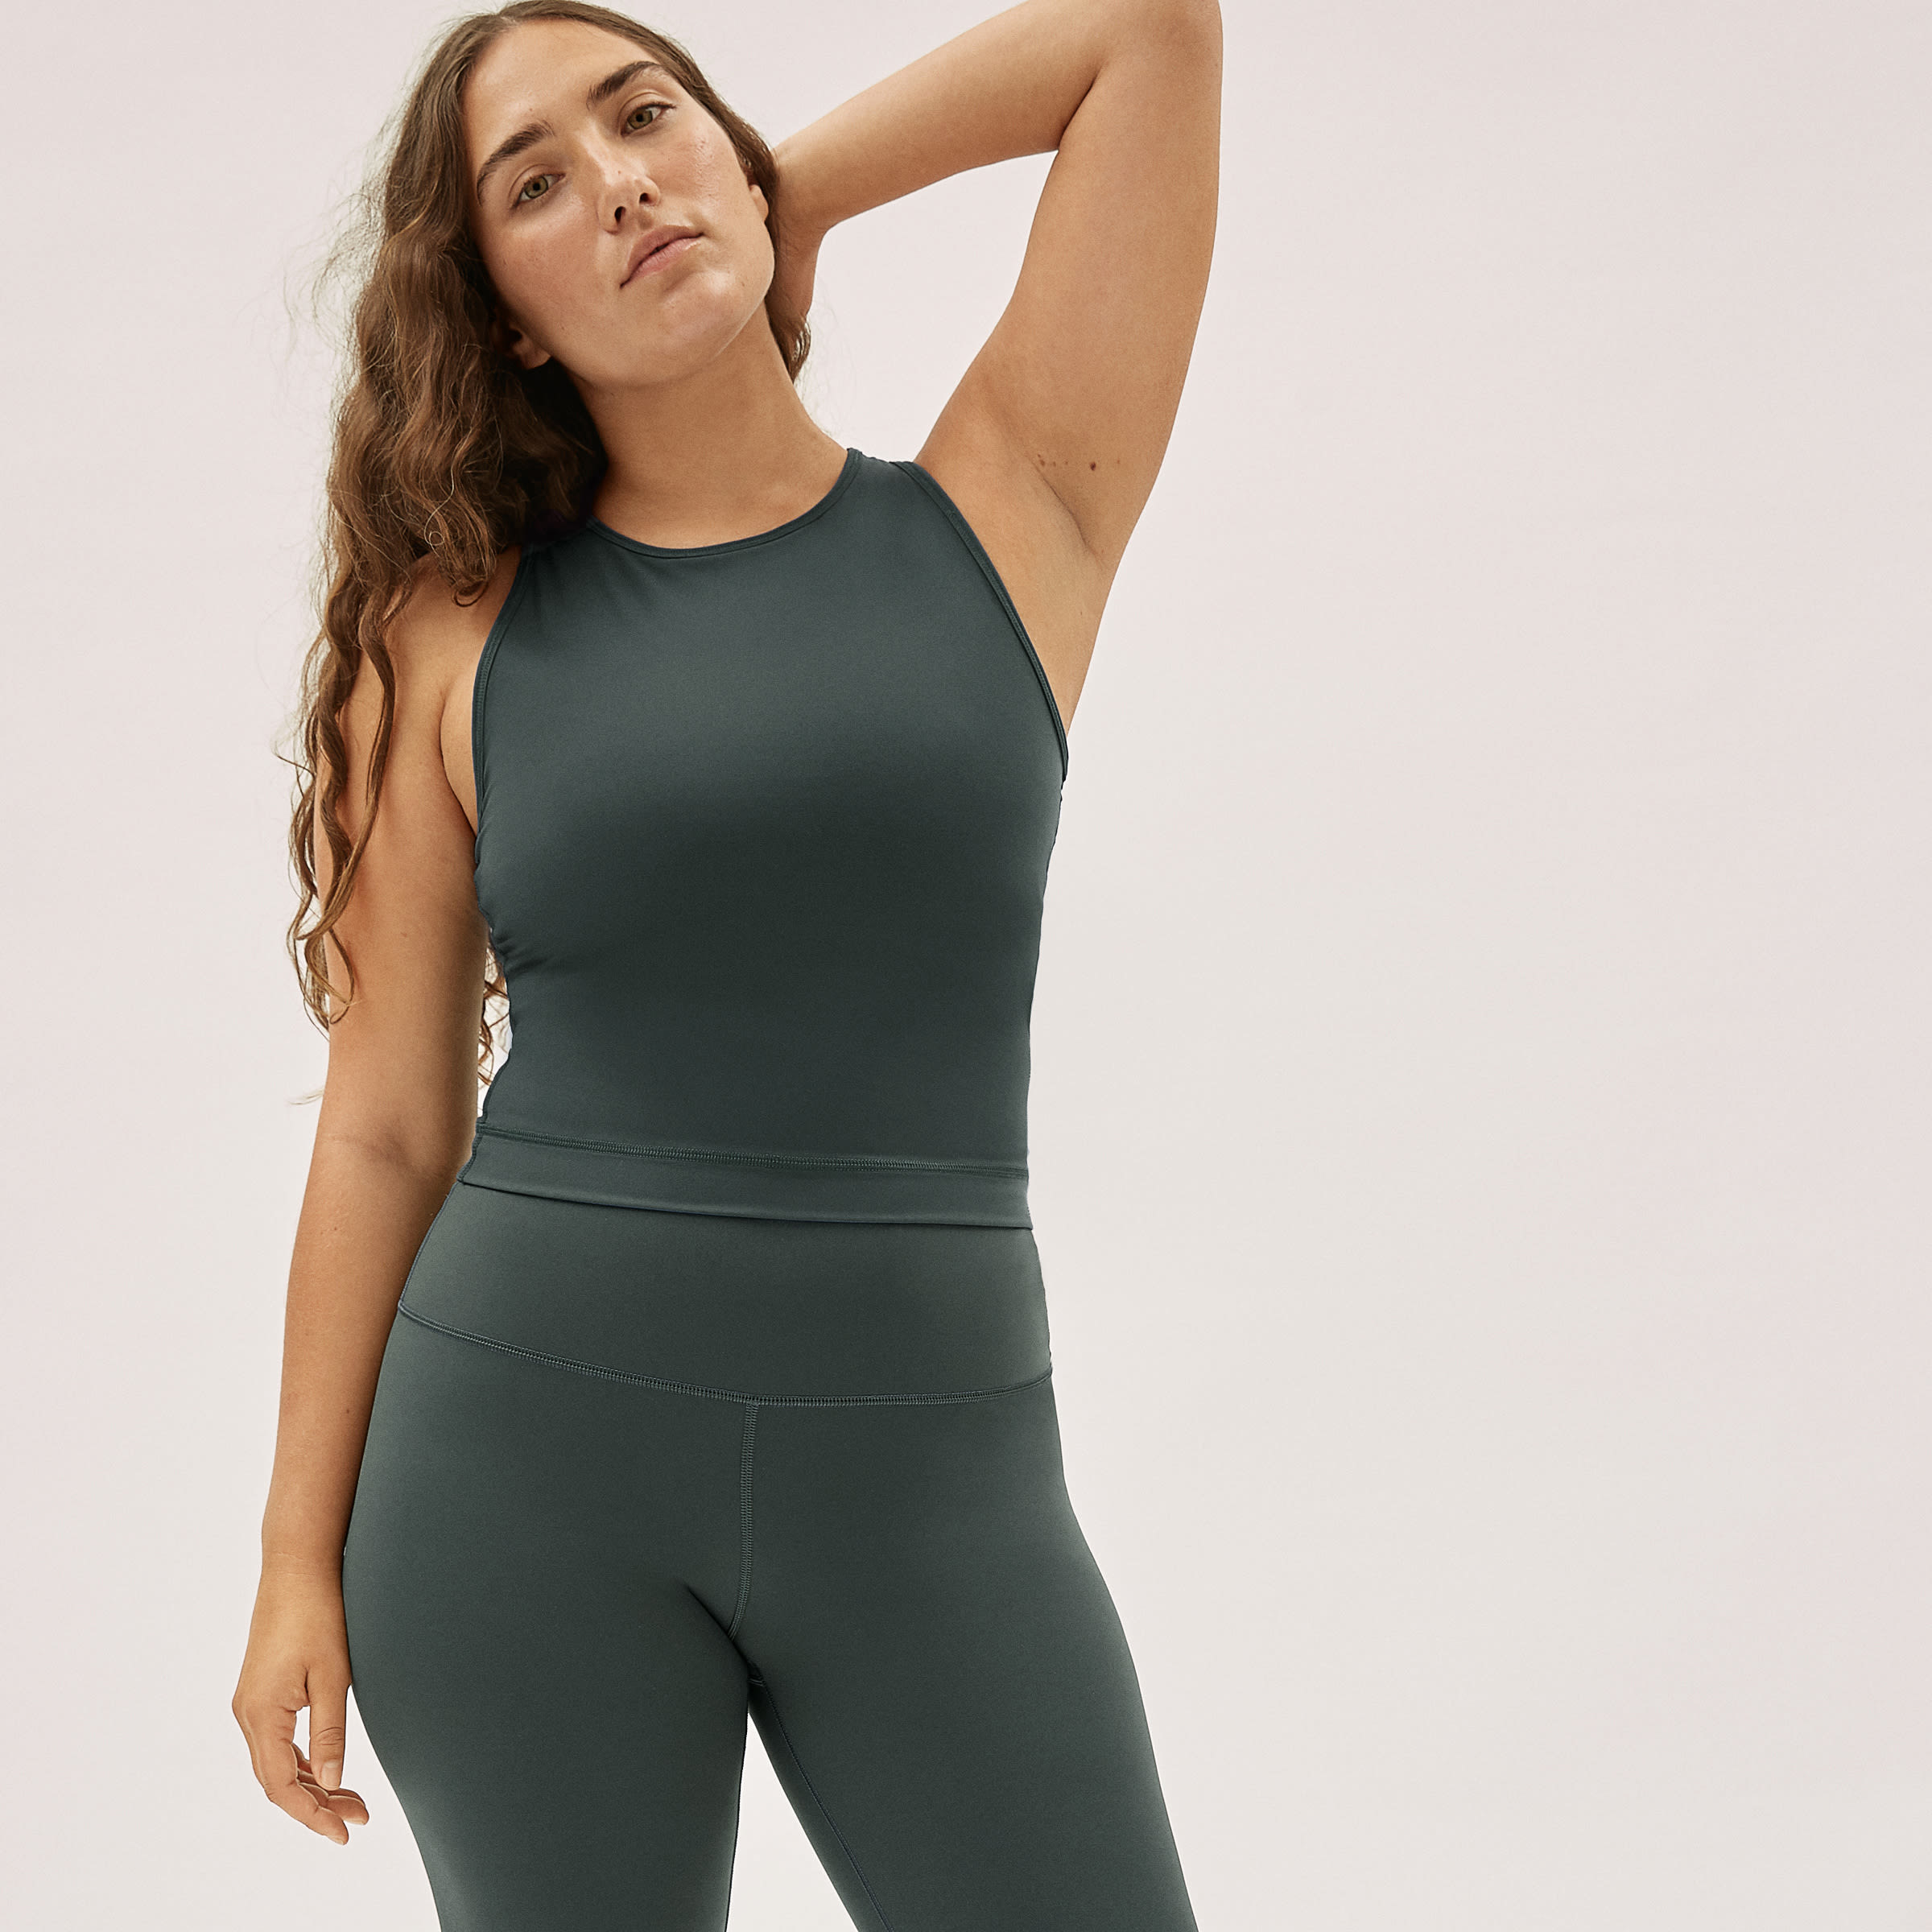 model wearing the high-neck tank in dark green